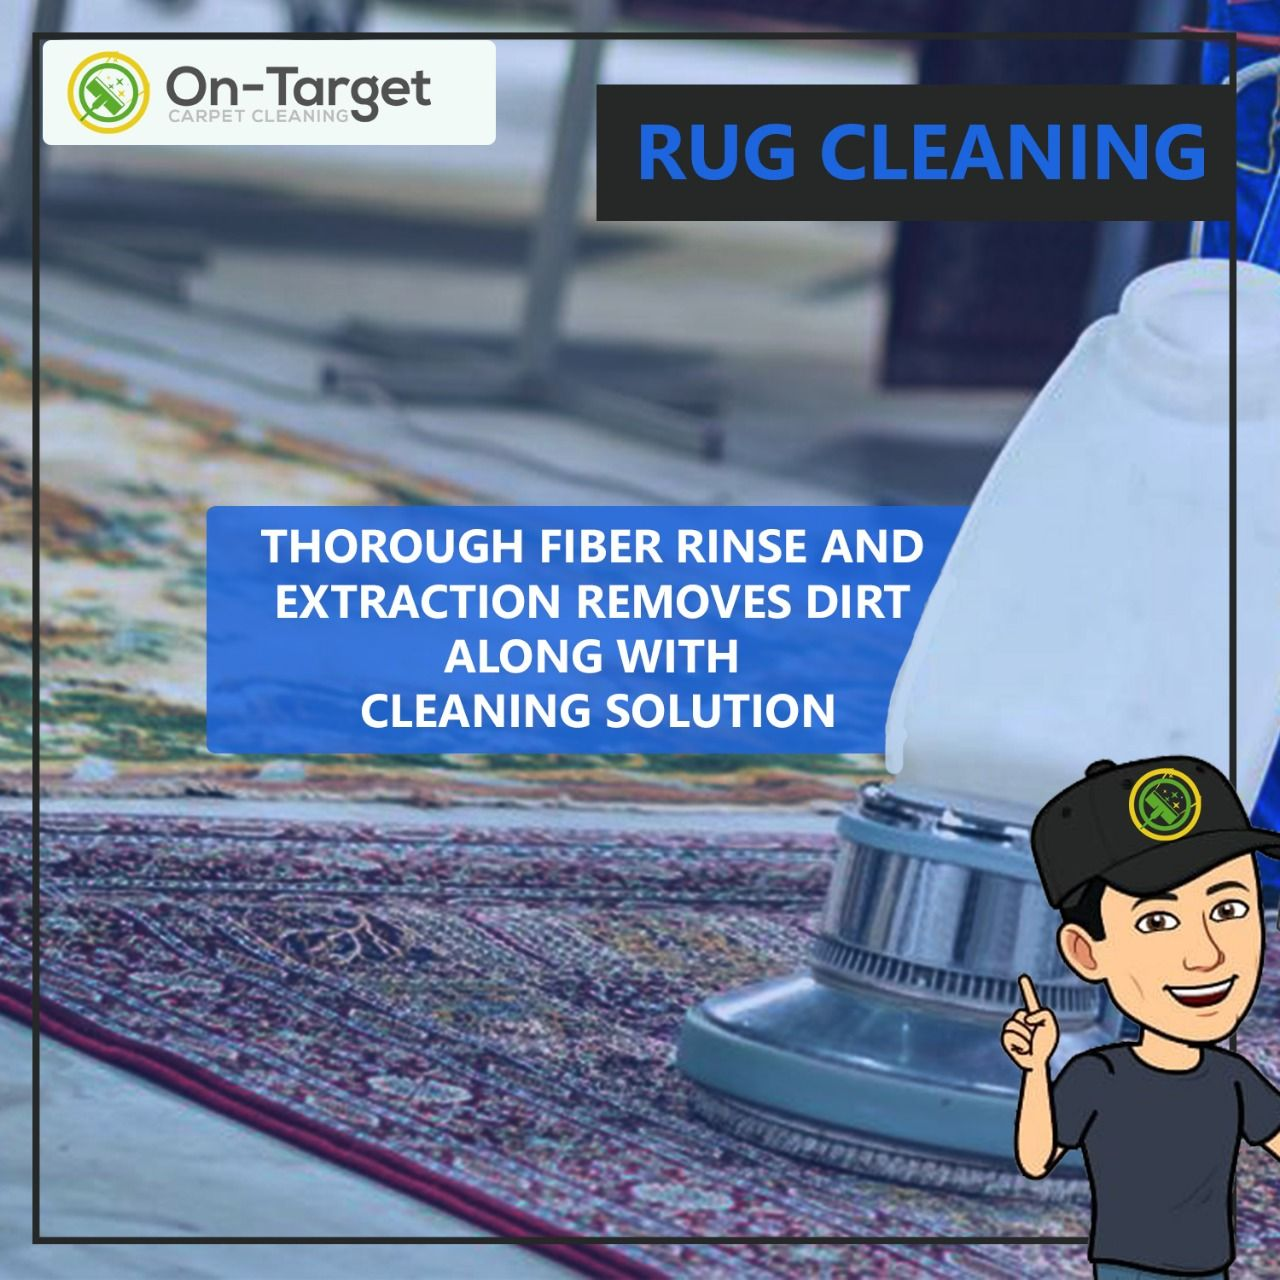 Let On-Target Carpet Cleaning Repair & Restore Any Area Or Oriental Rug That You May Own !! Our Promise - To Deliver Quality Rug Cleaning.. Get Your Area Rugs Cleaned Safely & Effectively.  #rugcleaningservice #rugcleaners #bestrugcleaners #rugcleaningScottsdale